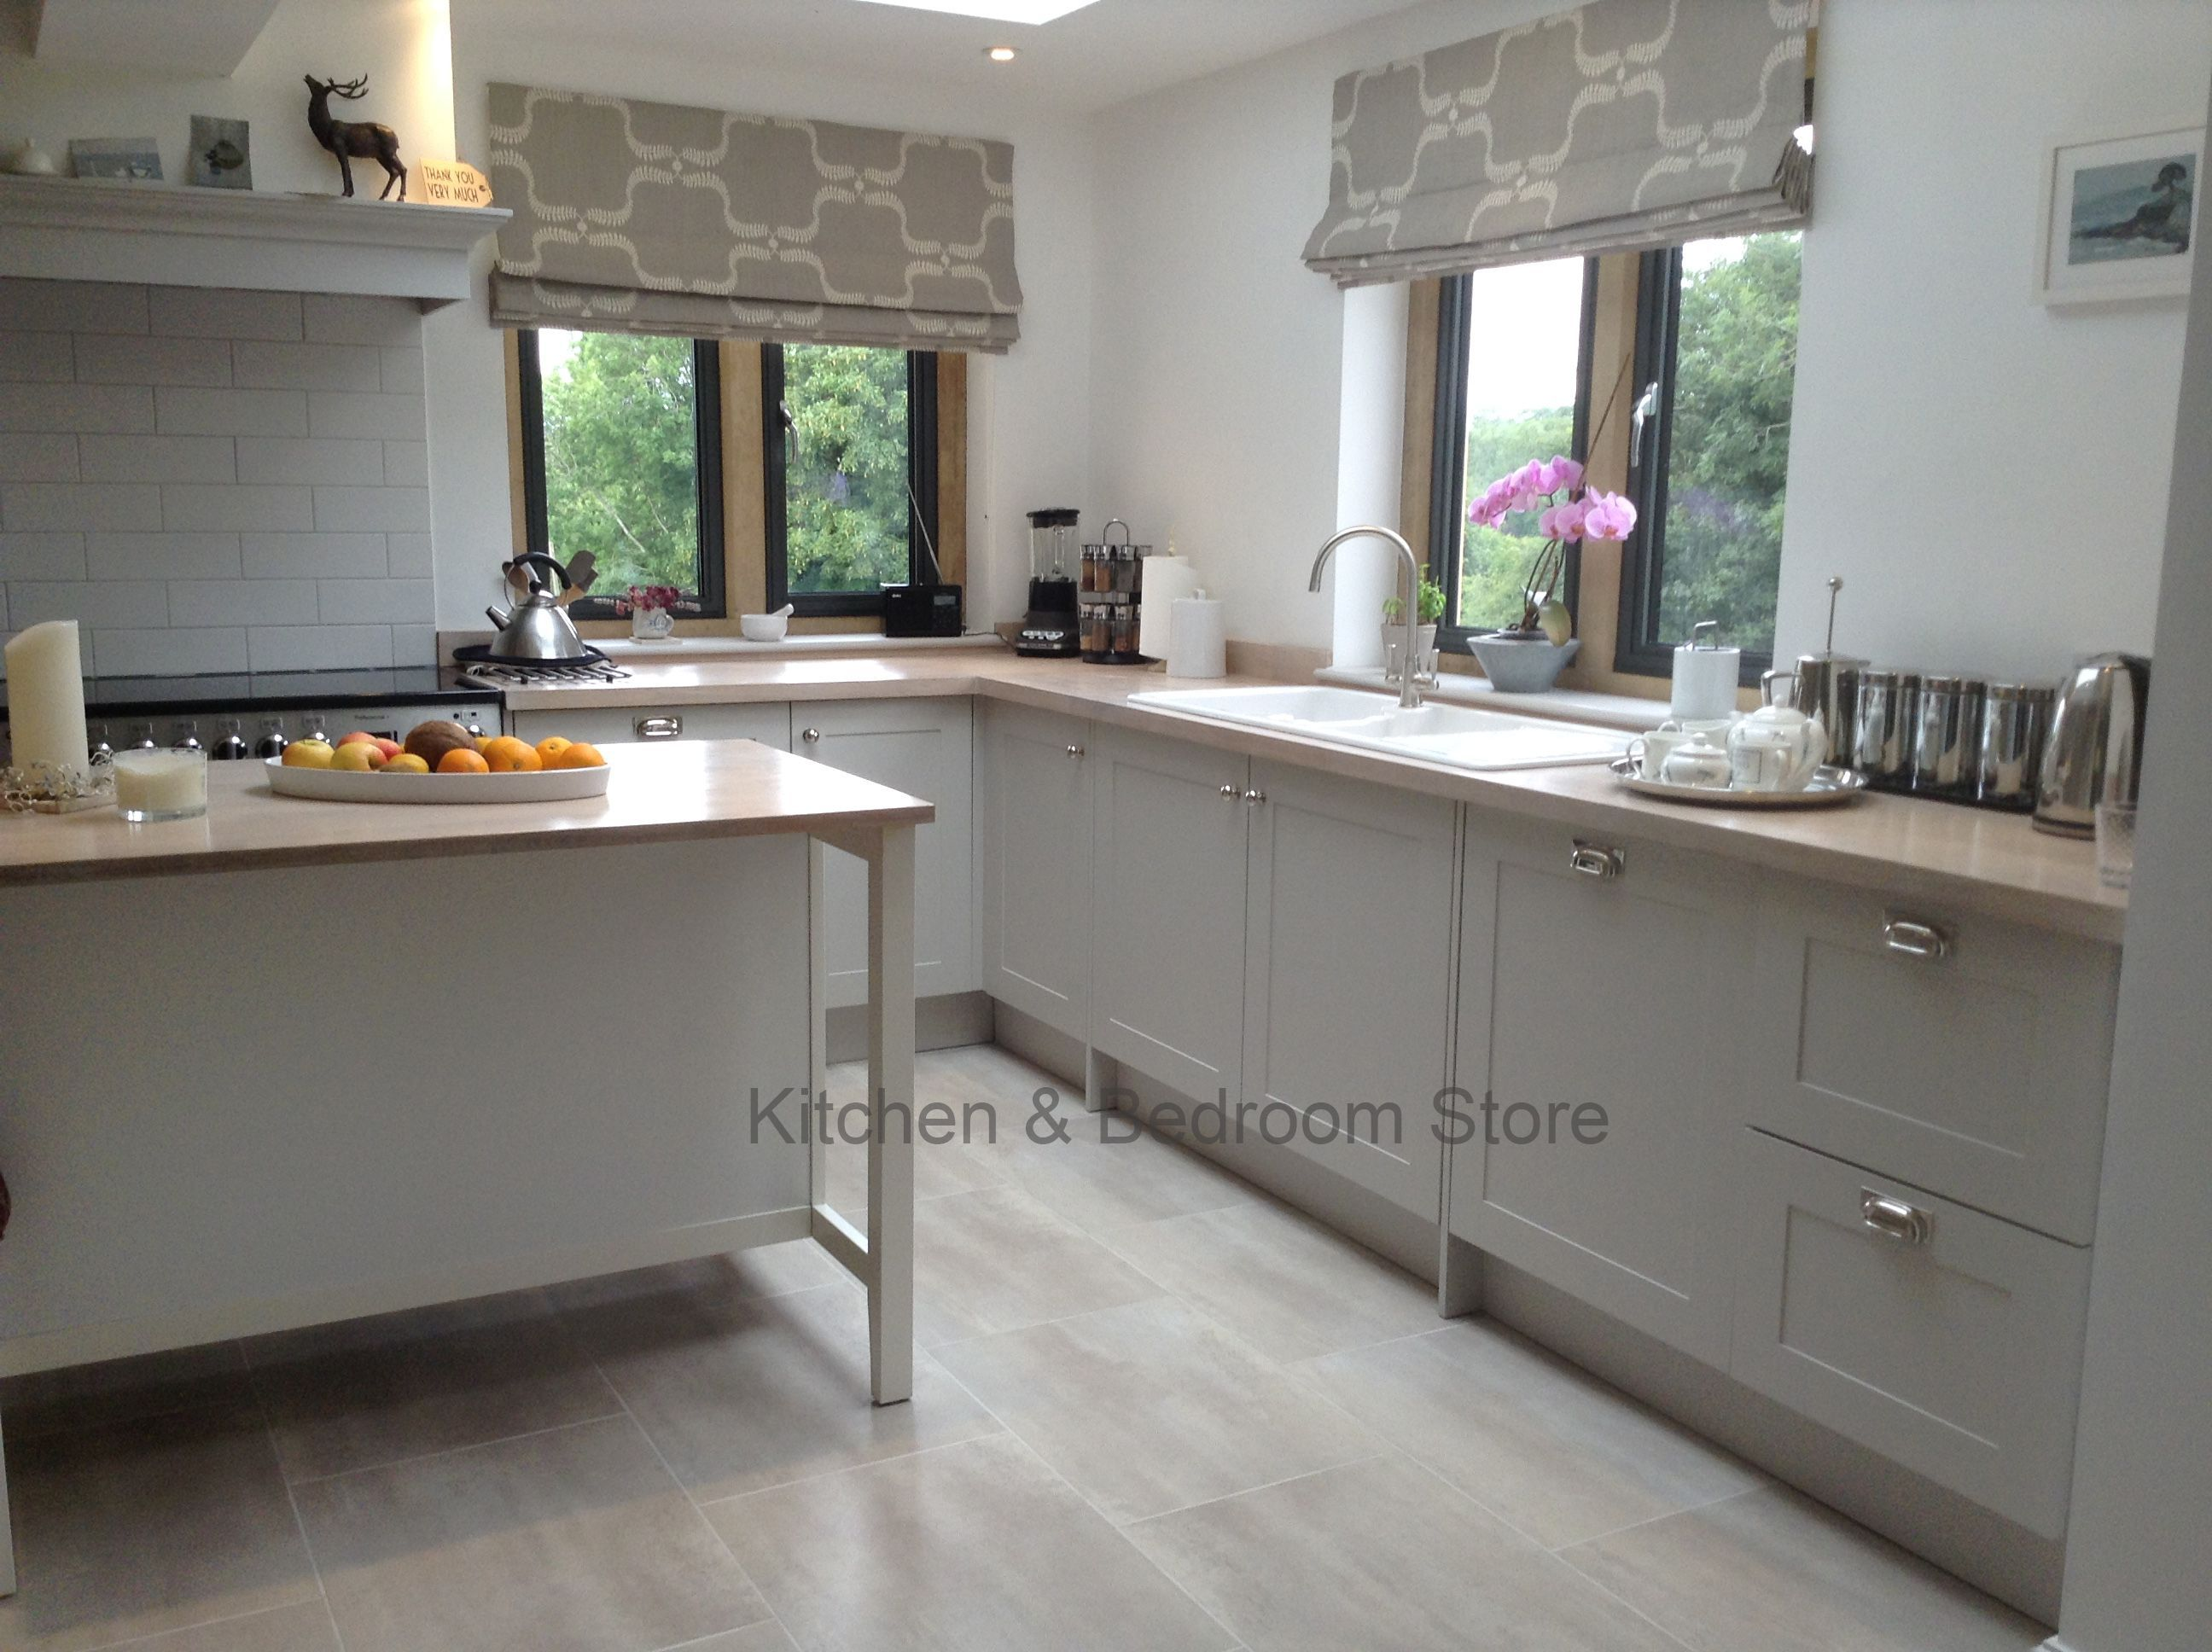 Painted shaker style kitchen with a modern country feel in farrow